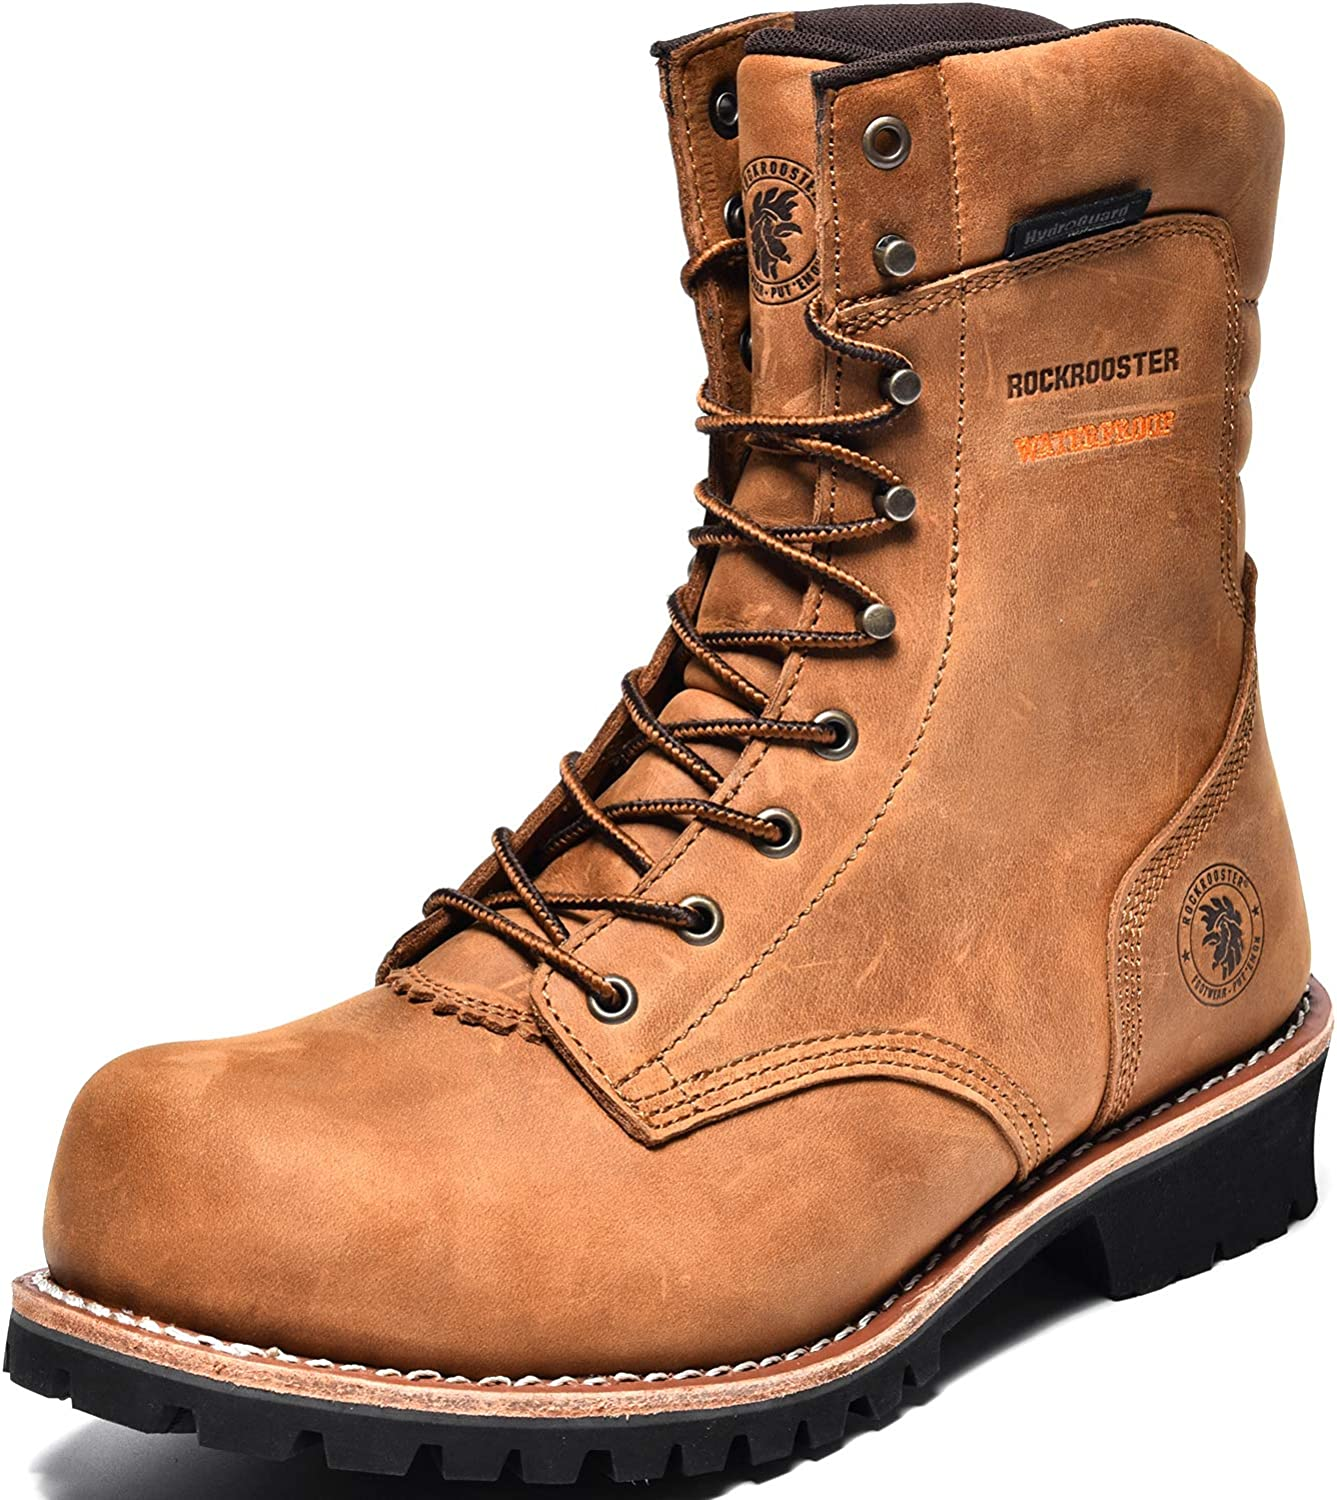 ROCKROOSTER Mens 全商品オープニング価格 Work Boots 9'' Logger Waterproof Shoes 2020A/W新作送料無料 Compos